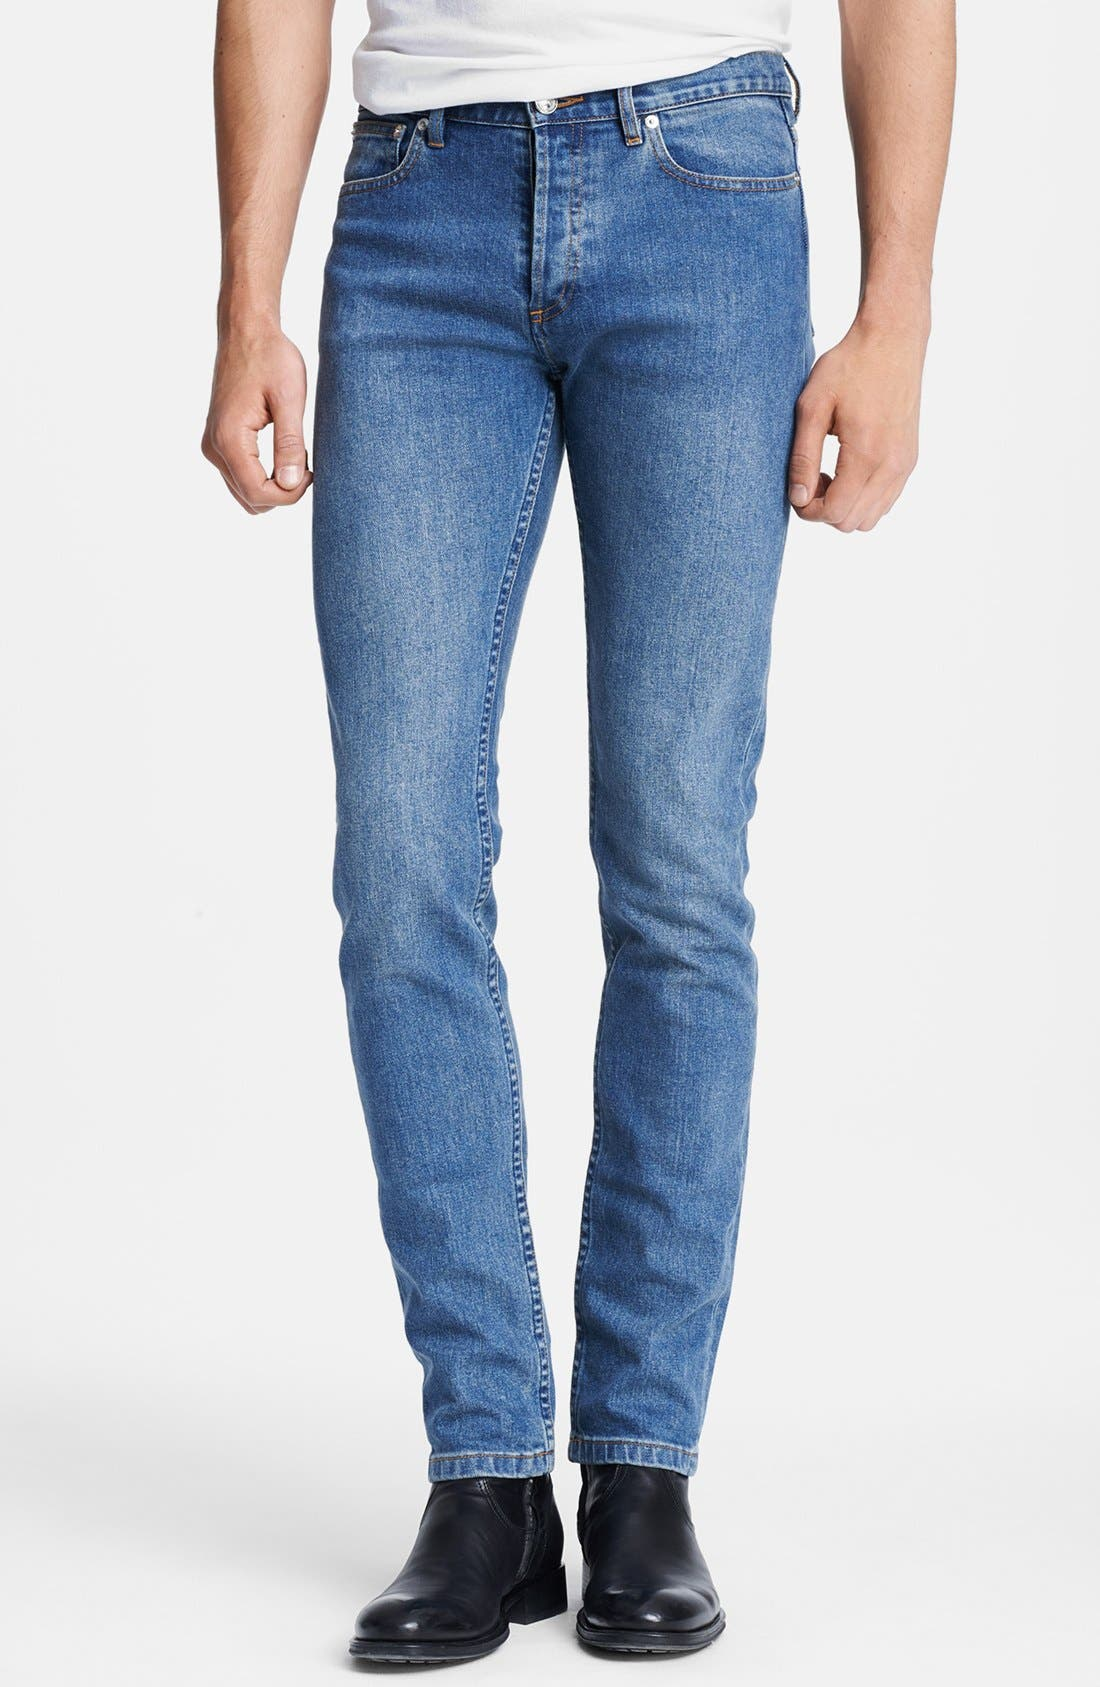 Alternate Image 1 Selected - A.P.C. 'Petit New Standard' Skinny Fit Jeans (Denim Blue)